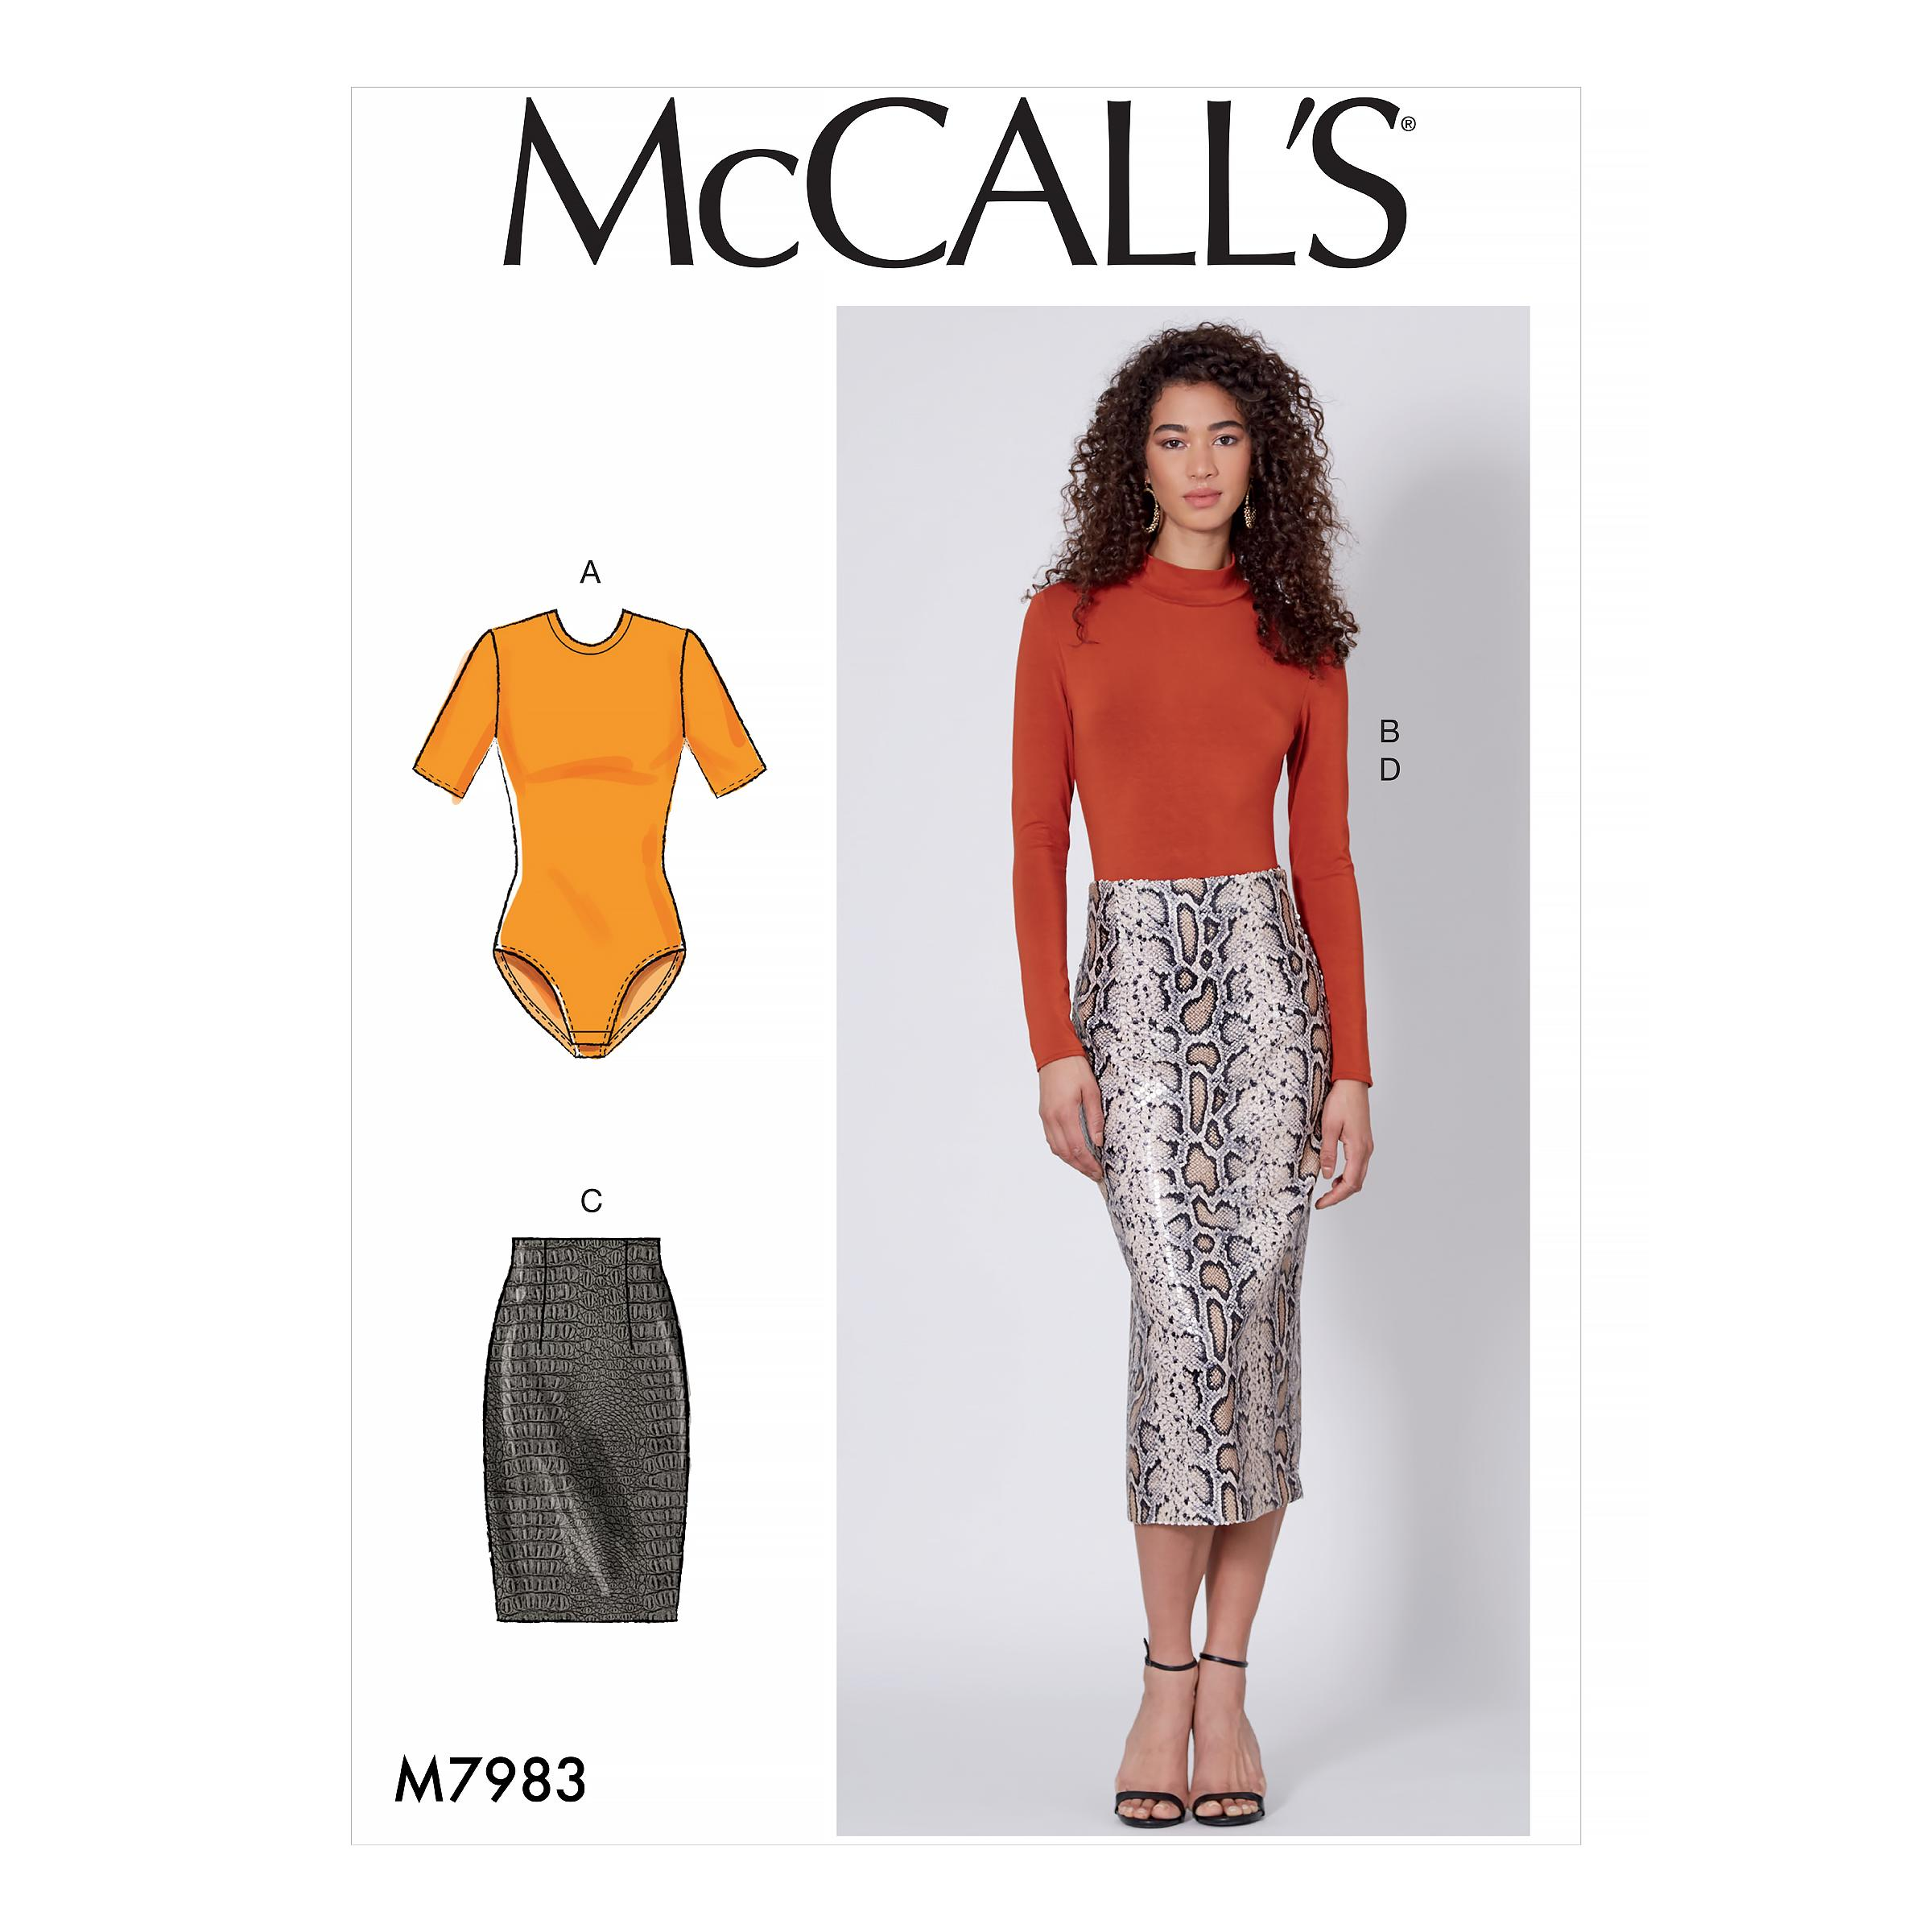 McCalls M7983 Misses Tops, Misses Skirts, Misses Coordinates